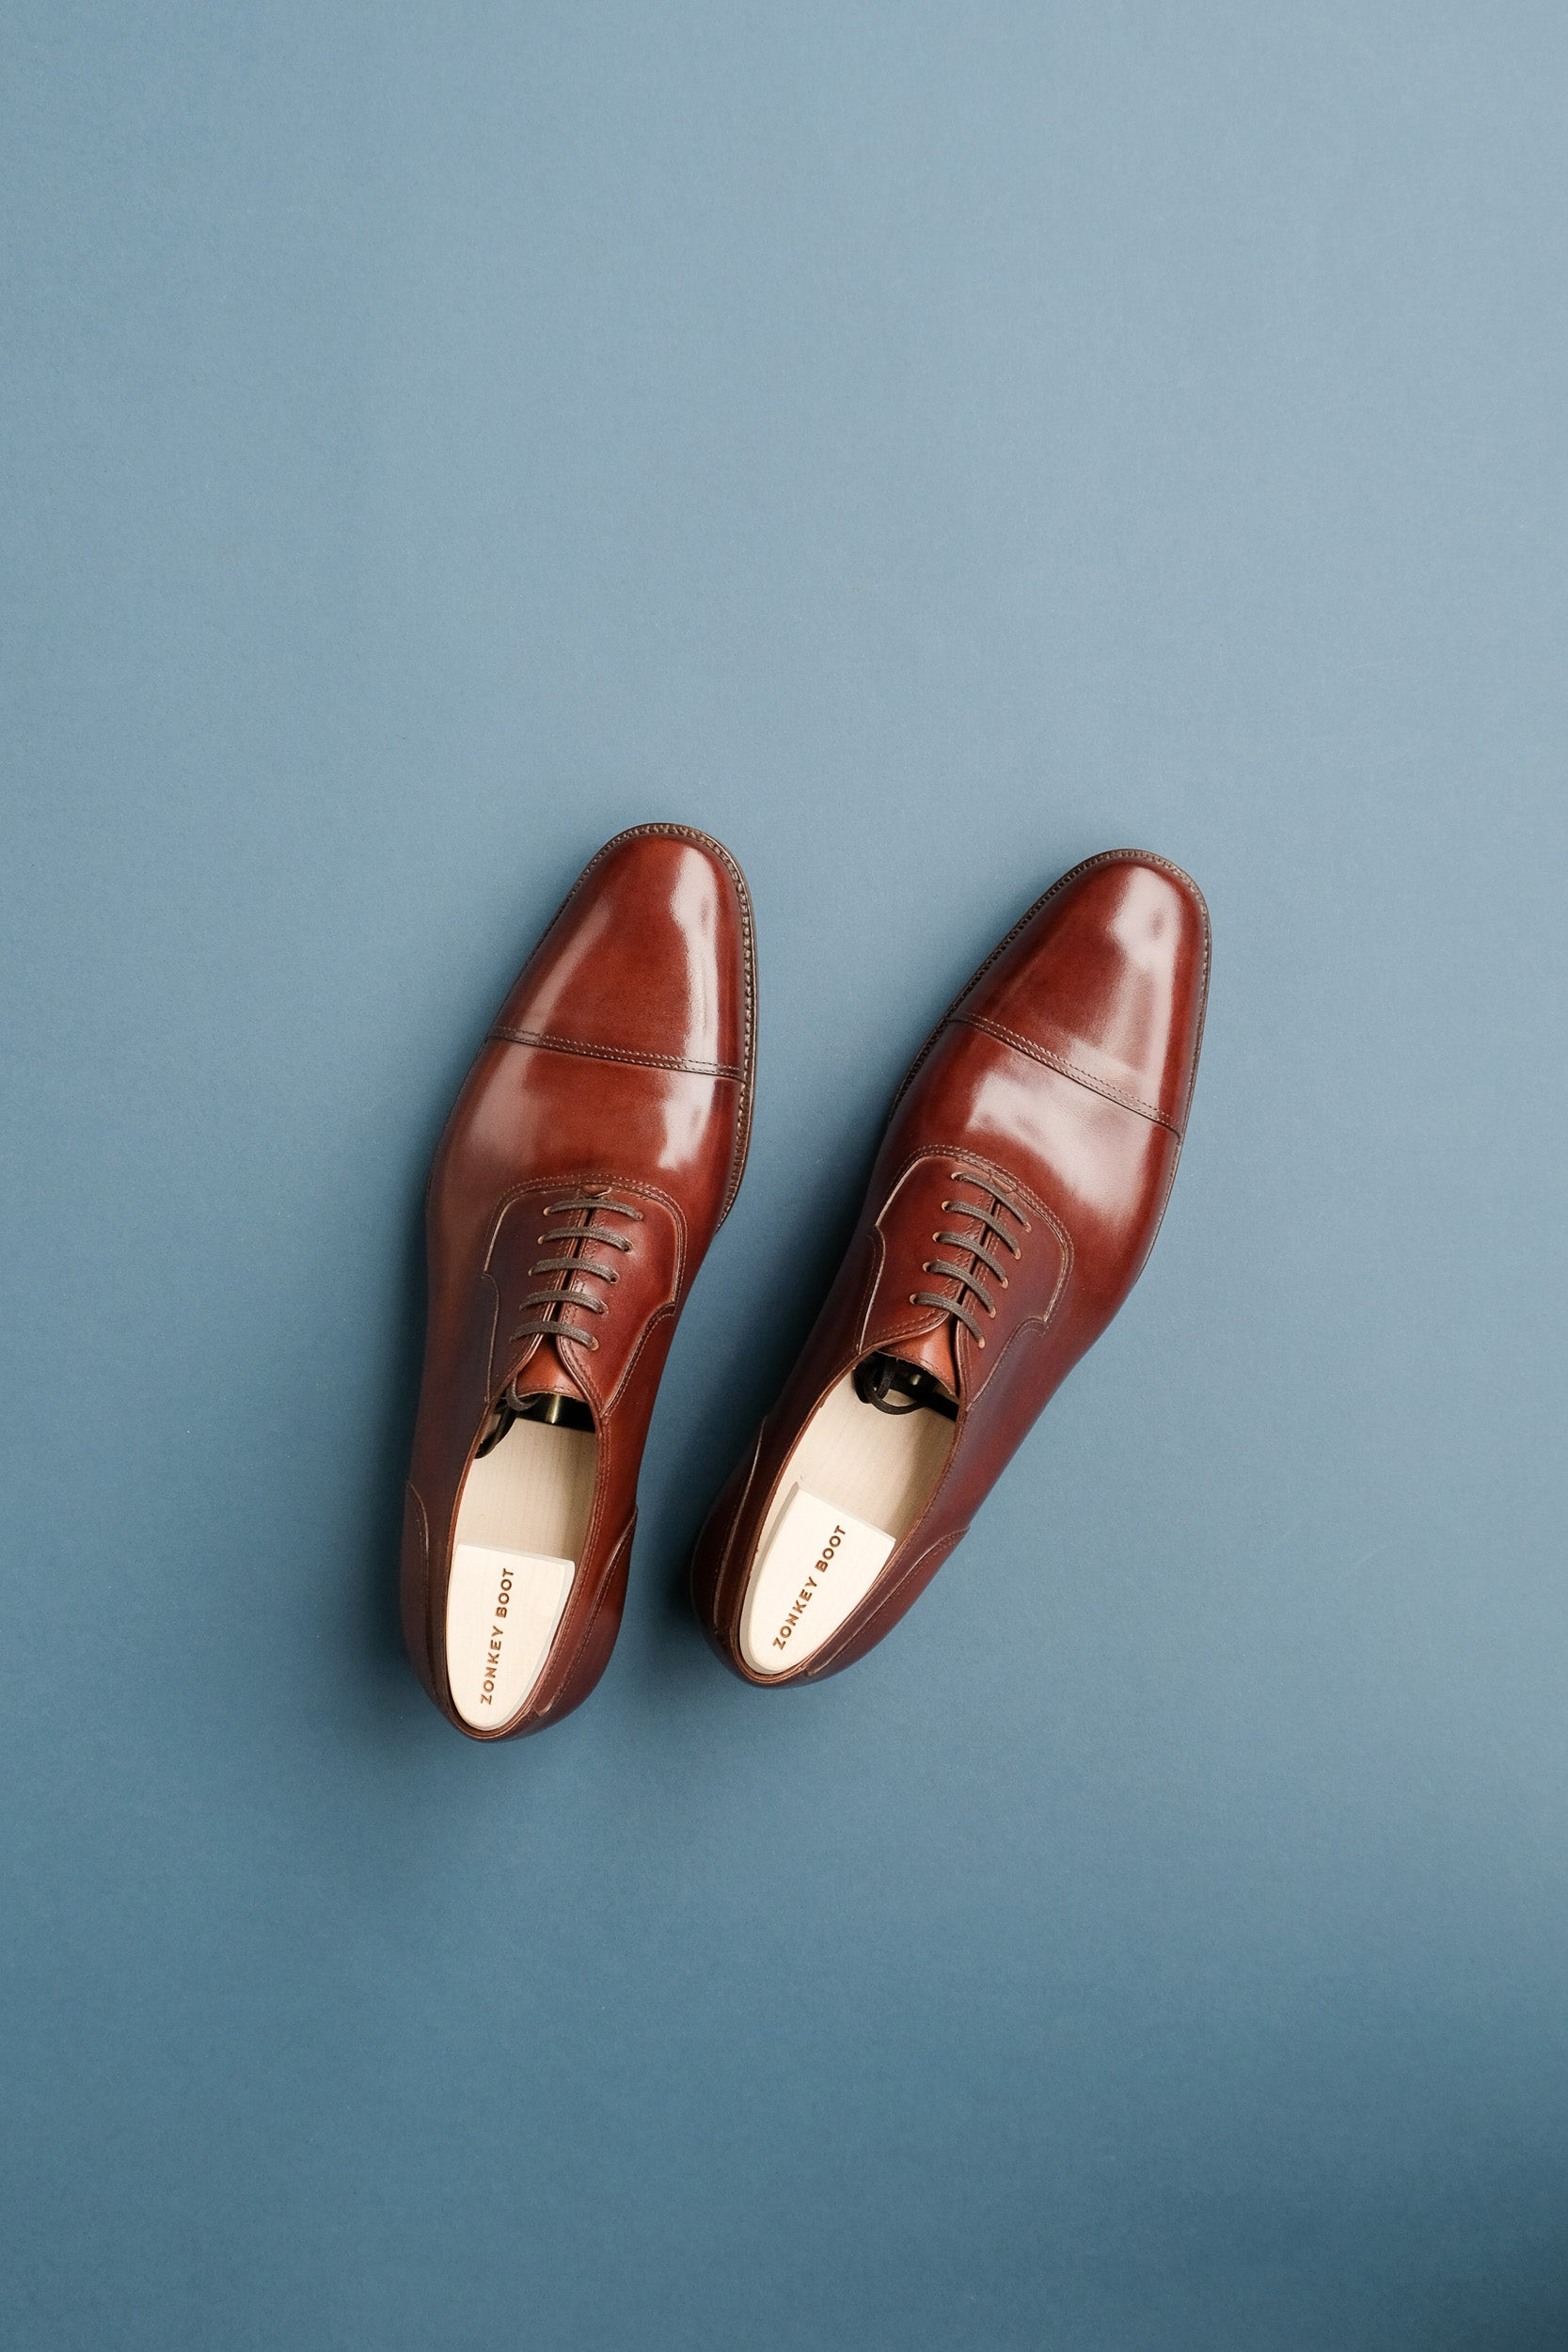 Zonkey Boot hand welted toe-cap oxfords on the High Street last